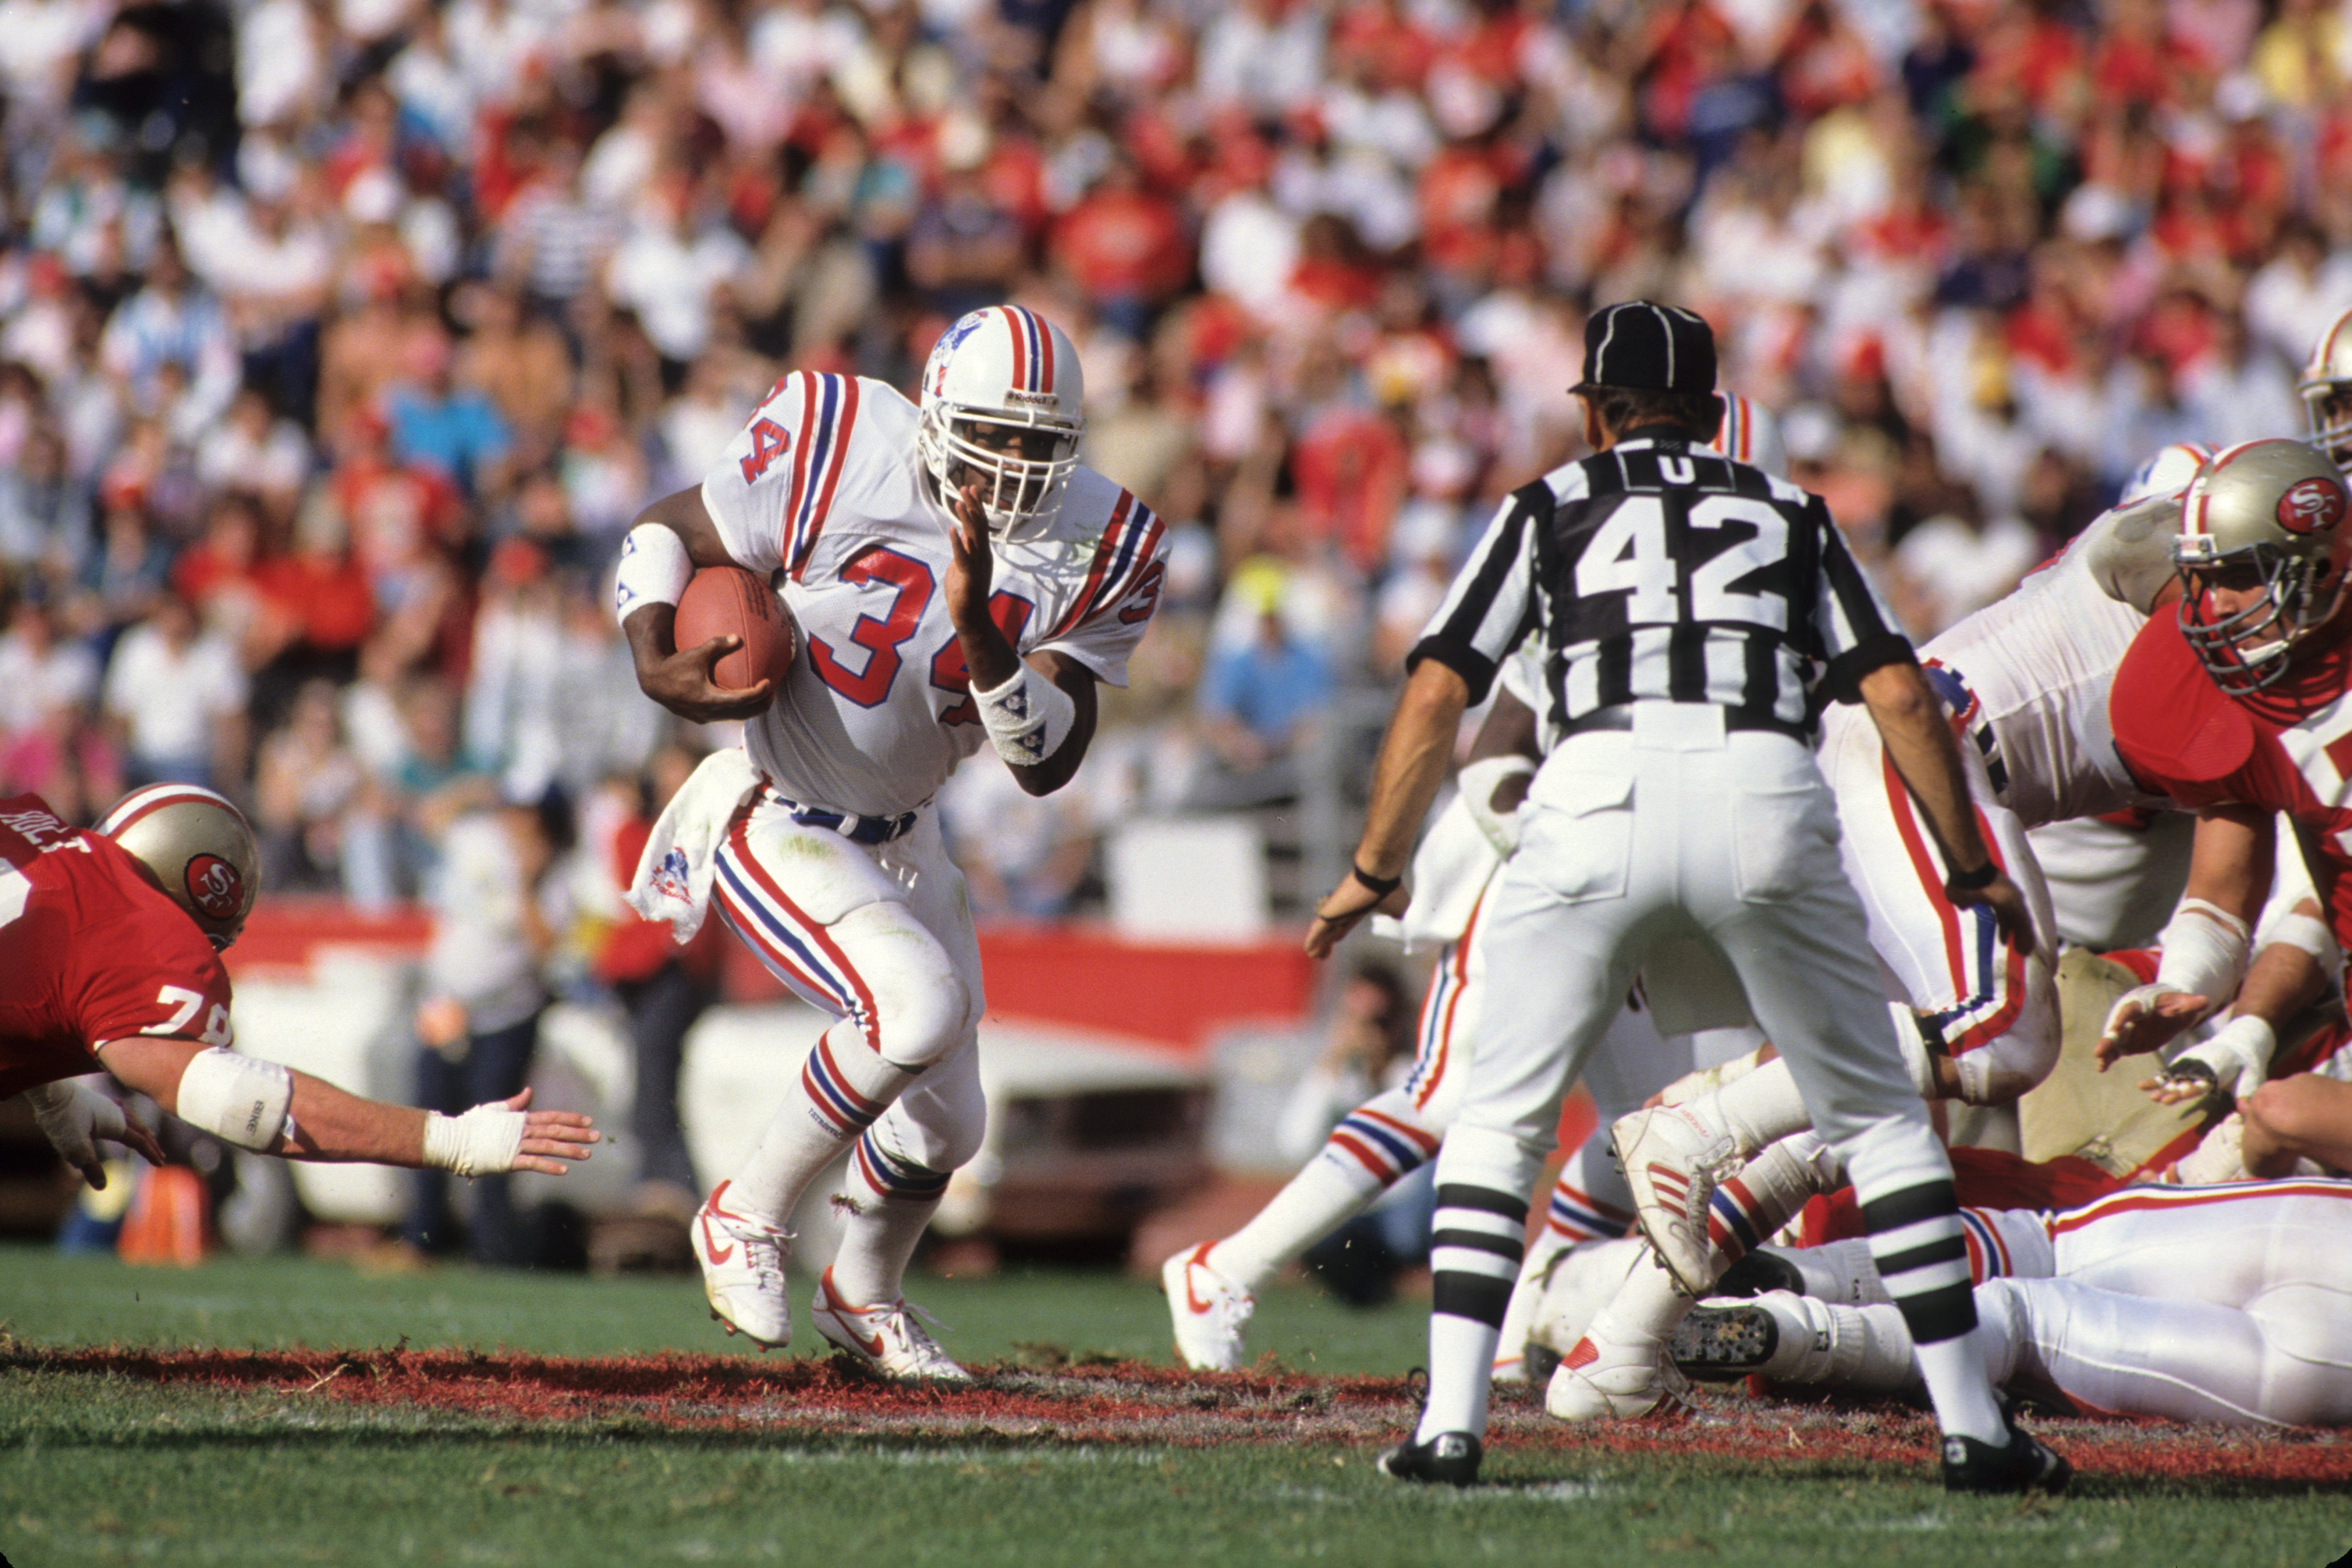 SAN FRANCISCO, CA - OCTOBER 22:  Robert Perryman #34 of New England Patriots runs with the ball during the game against the San Francisco 49ers at Candlestick Park on October 22, 1989 in San Francisco, California.  The 49ers won 37-20.  (Photo by George R